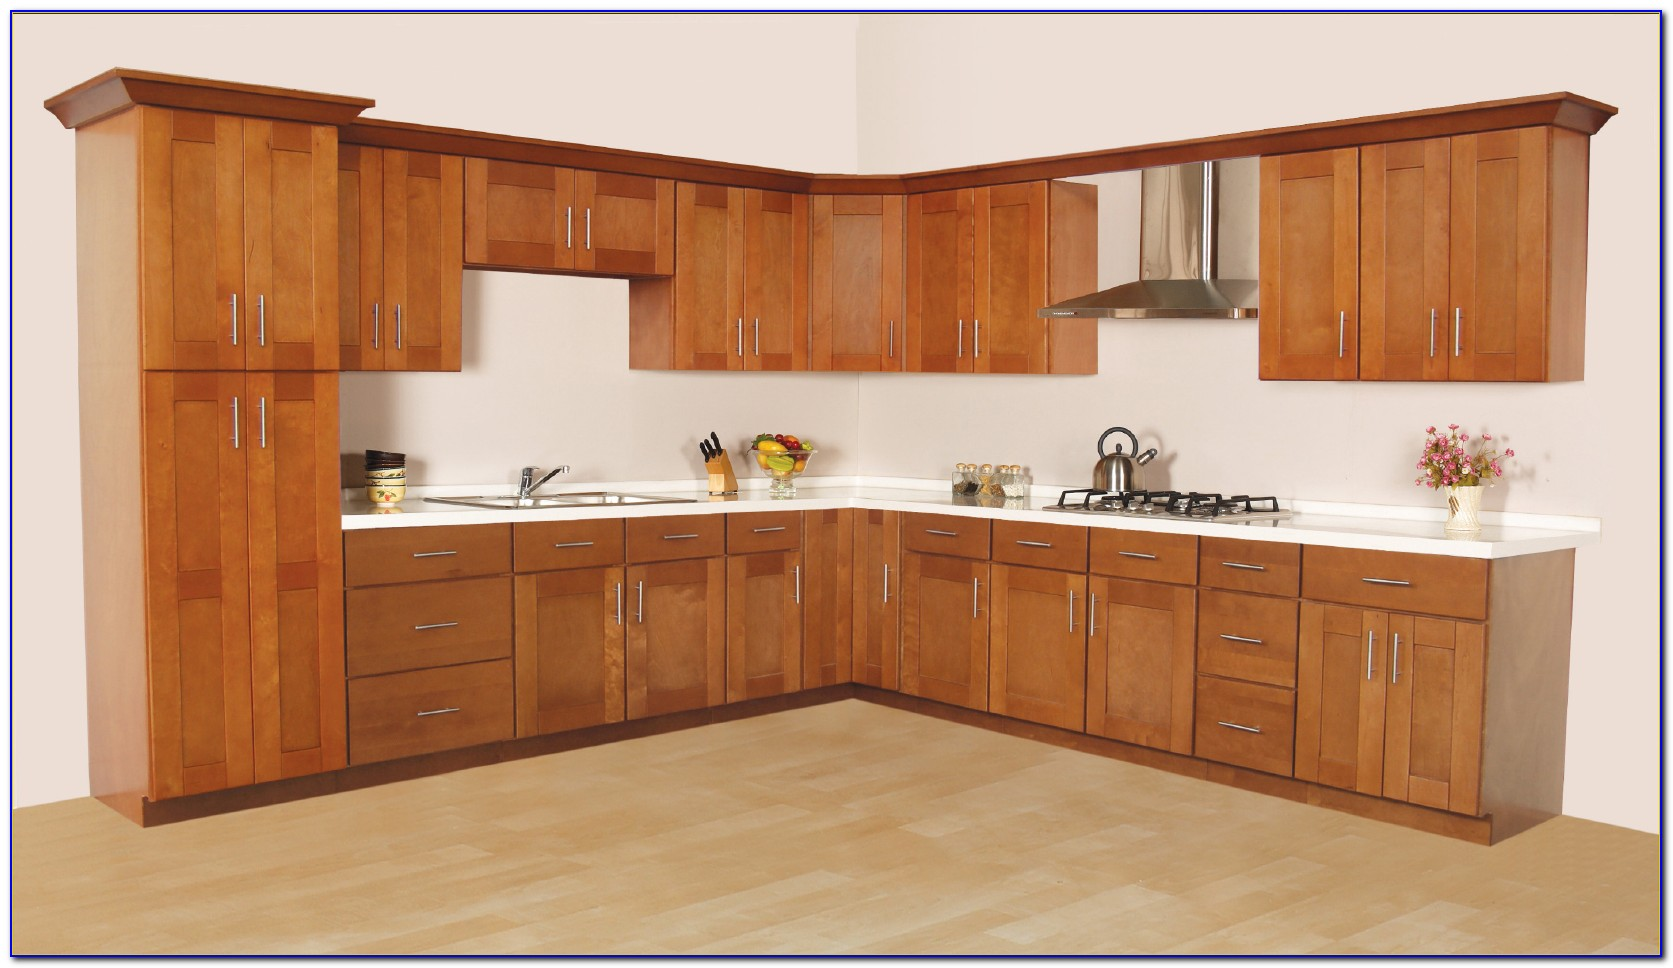 Menards Kitchen Cabinets Medallion Kitchen Set Home Design Ideas Bjzmlnz1rv